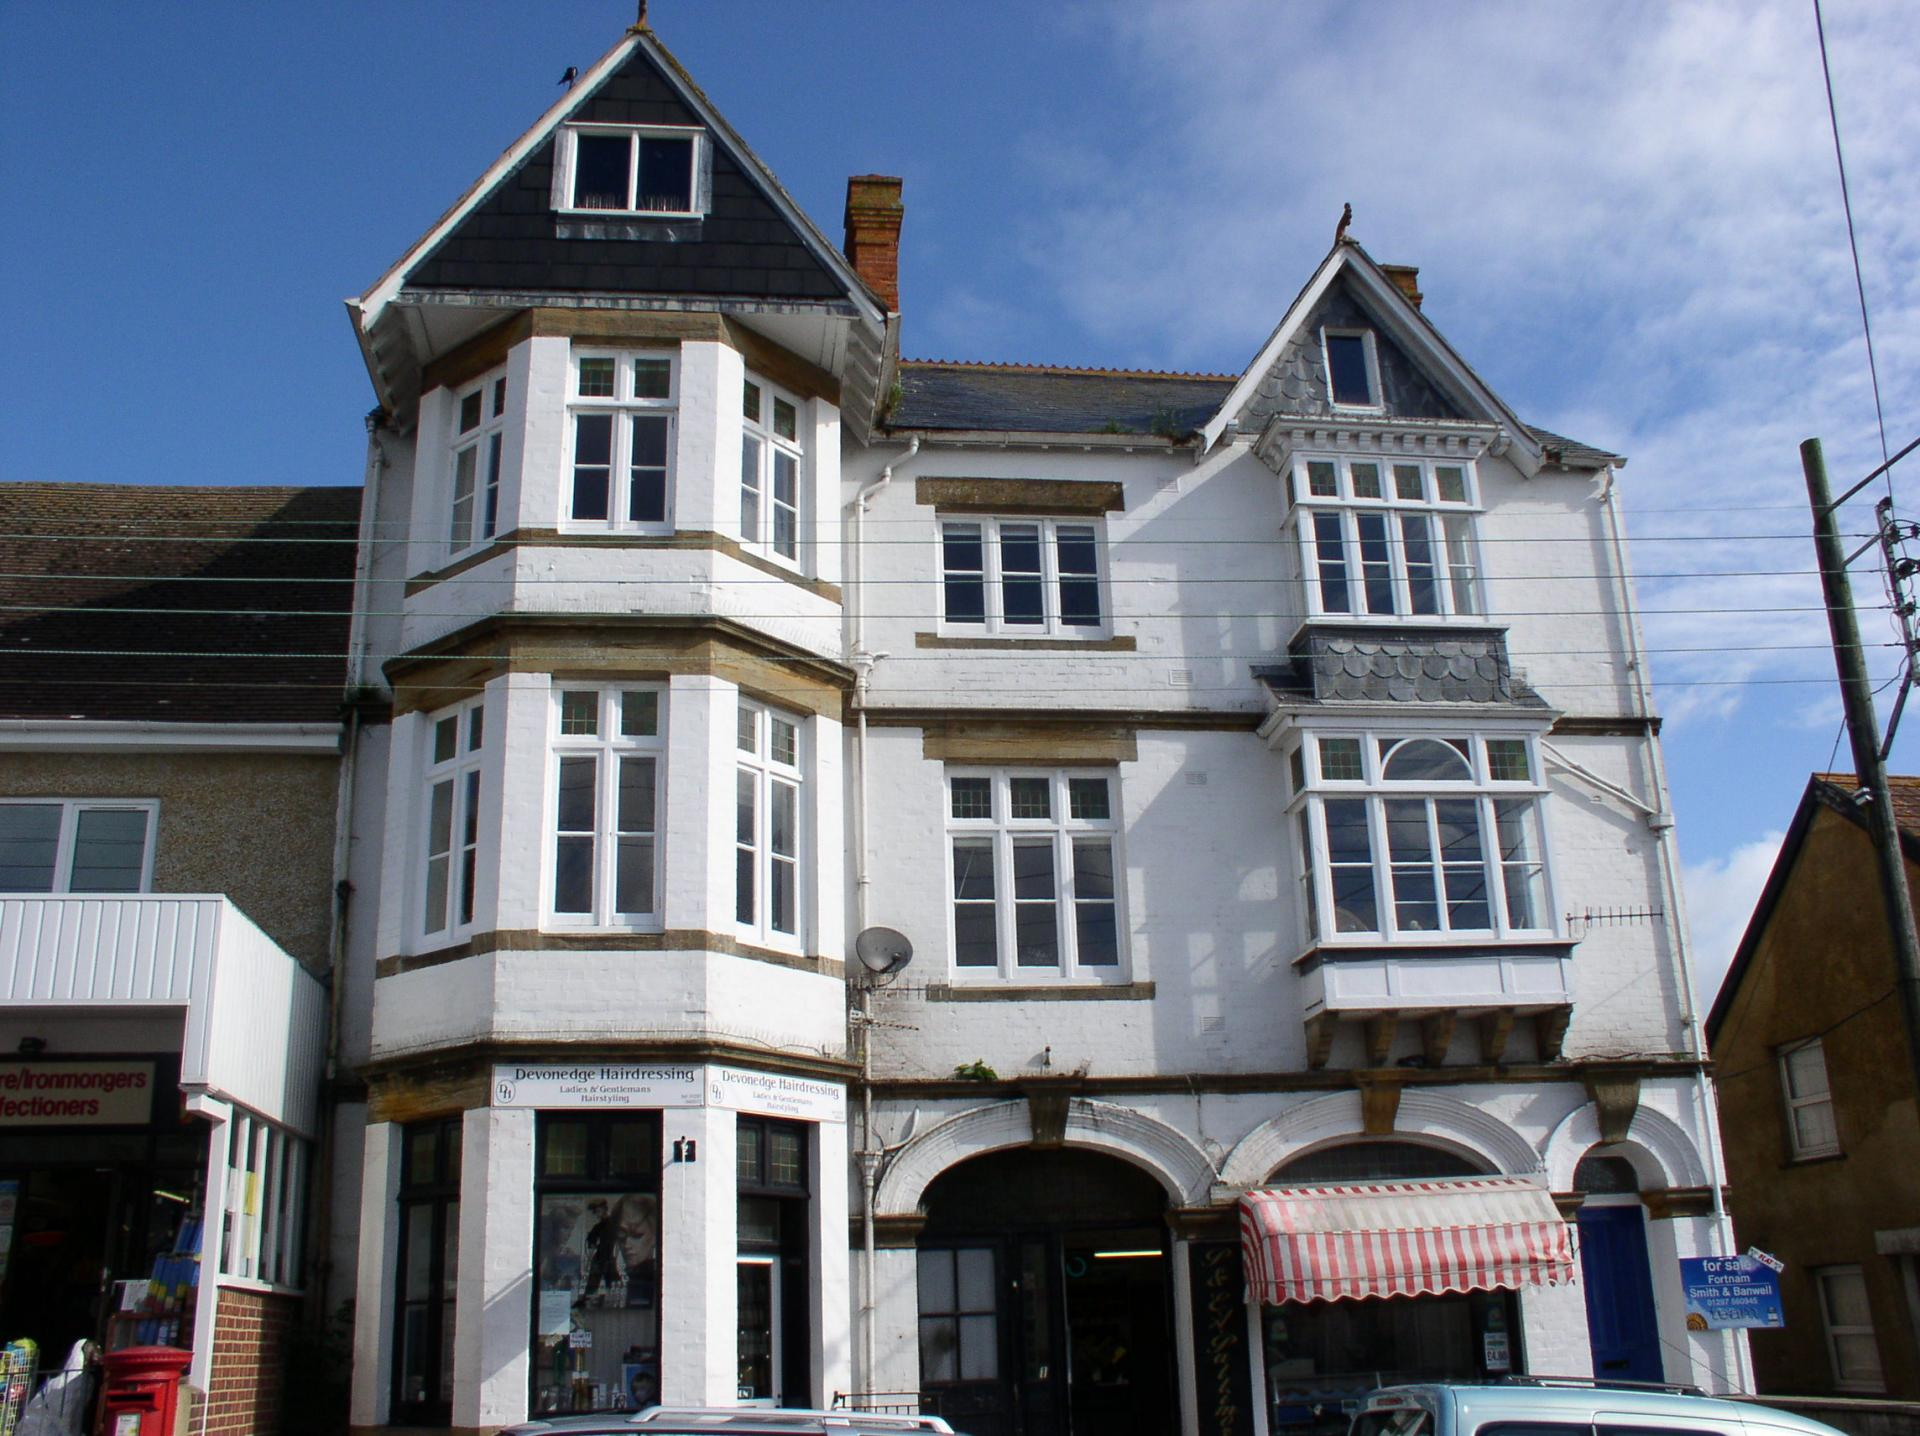 2 Bedrooms Flat for sale in The Street, Charmouth DT6 6PZ